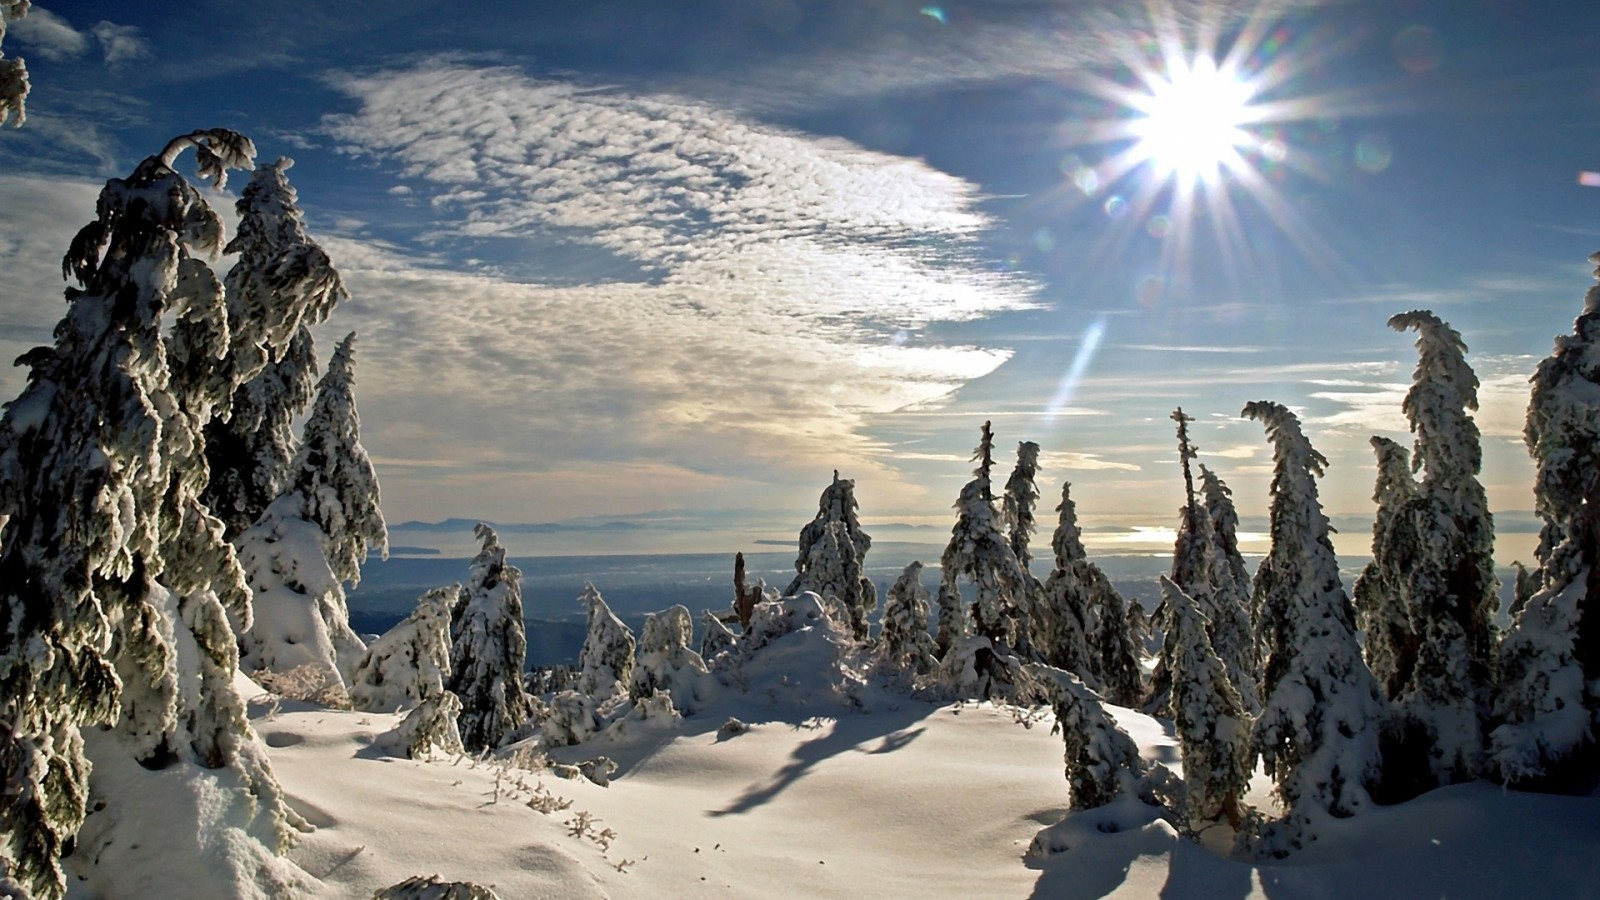 wallpapers-catalogue - winter sun in 1600x900 resolution.